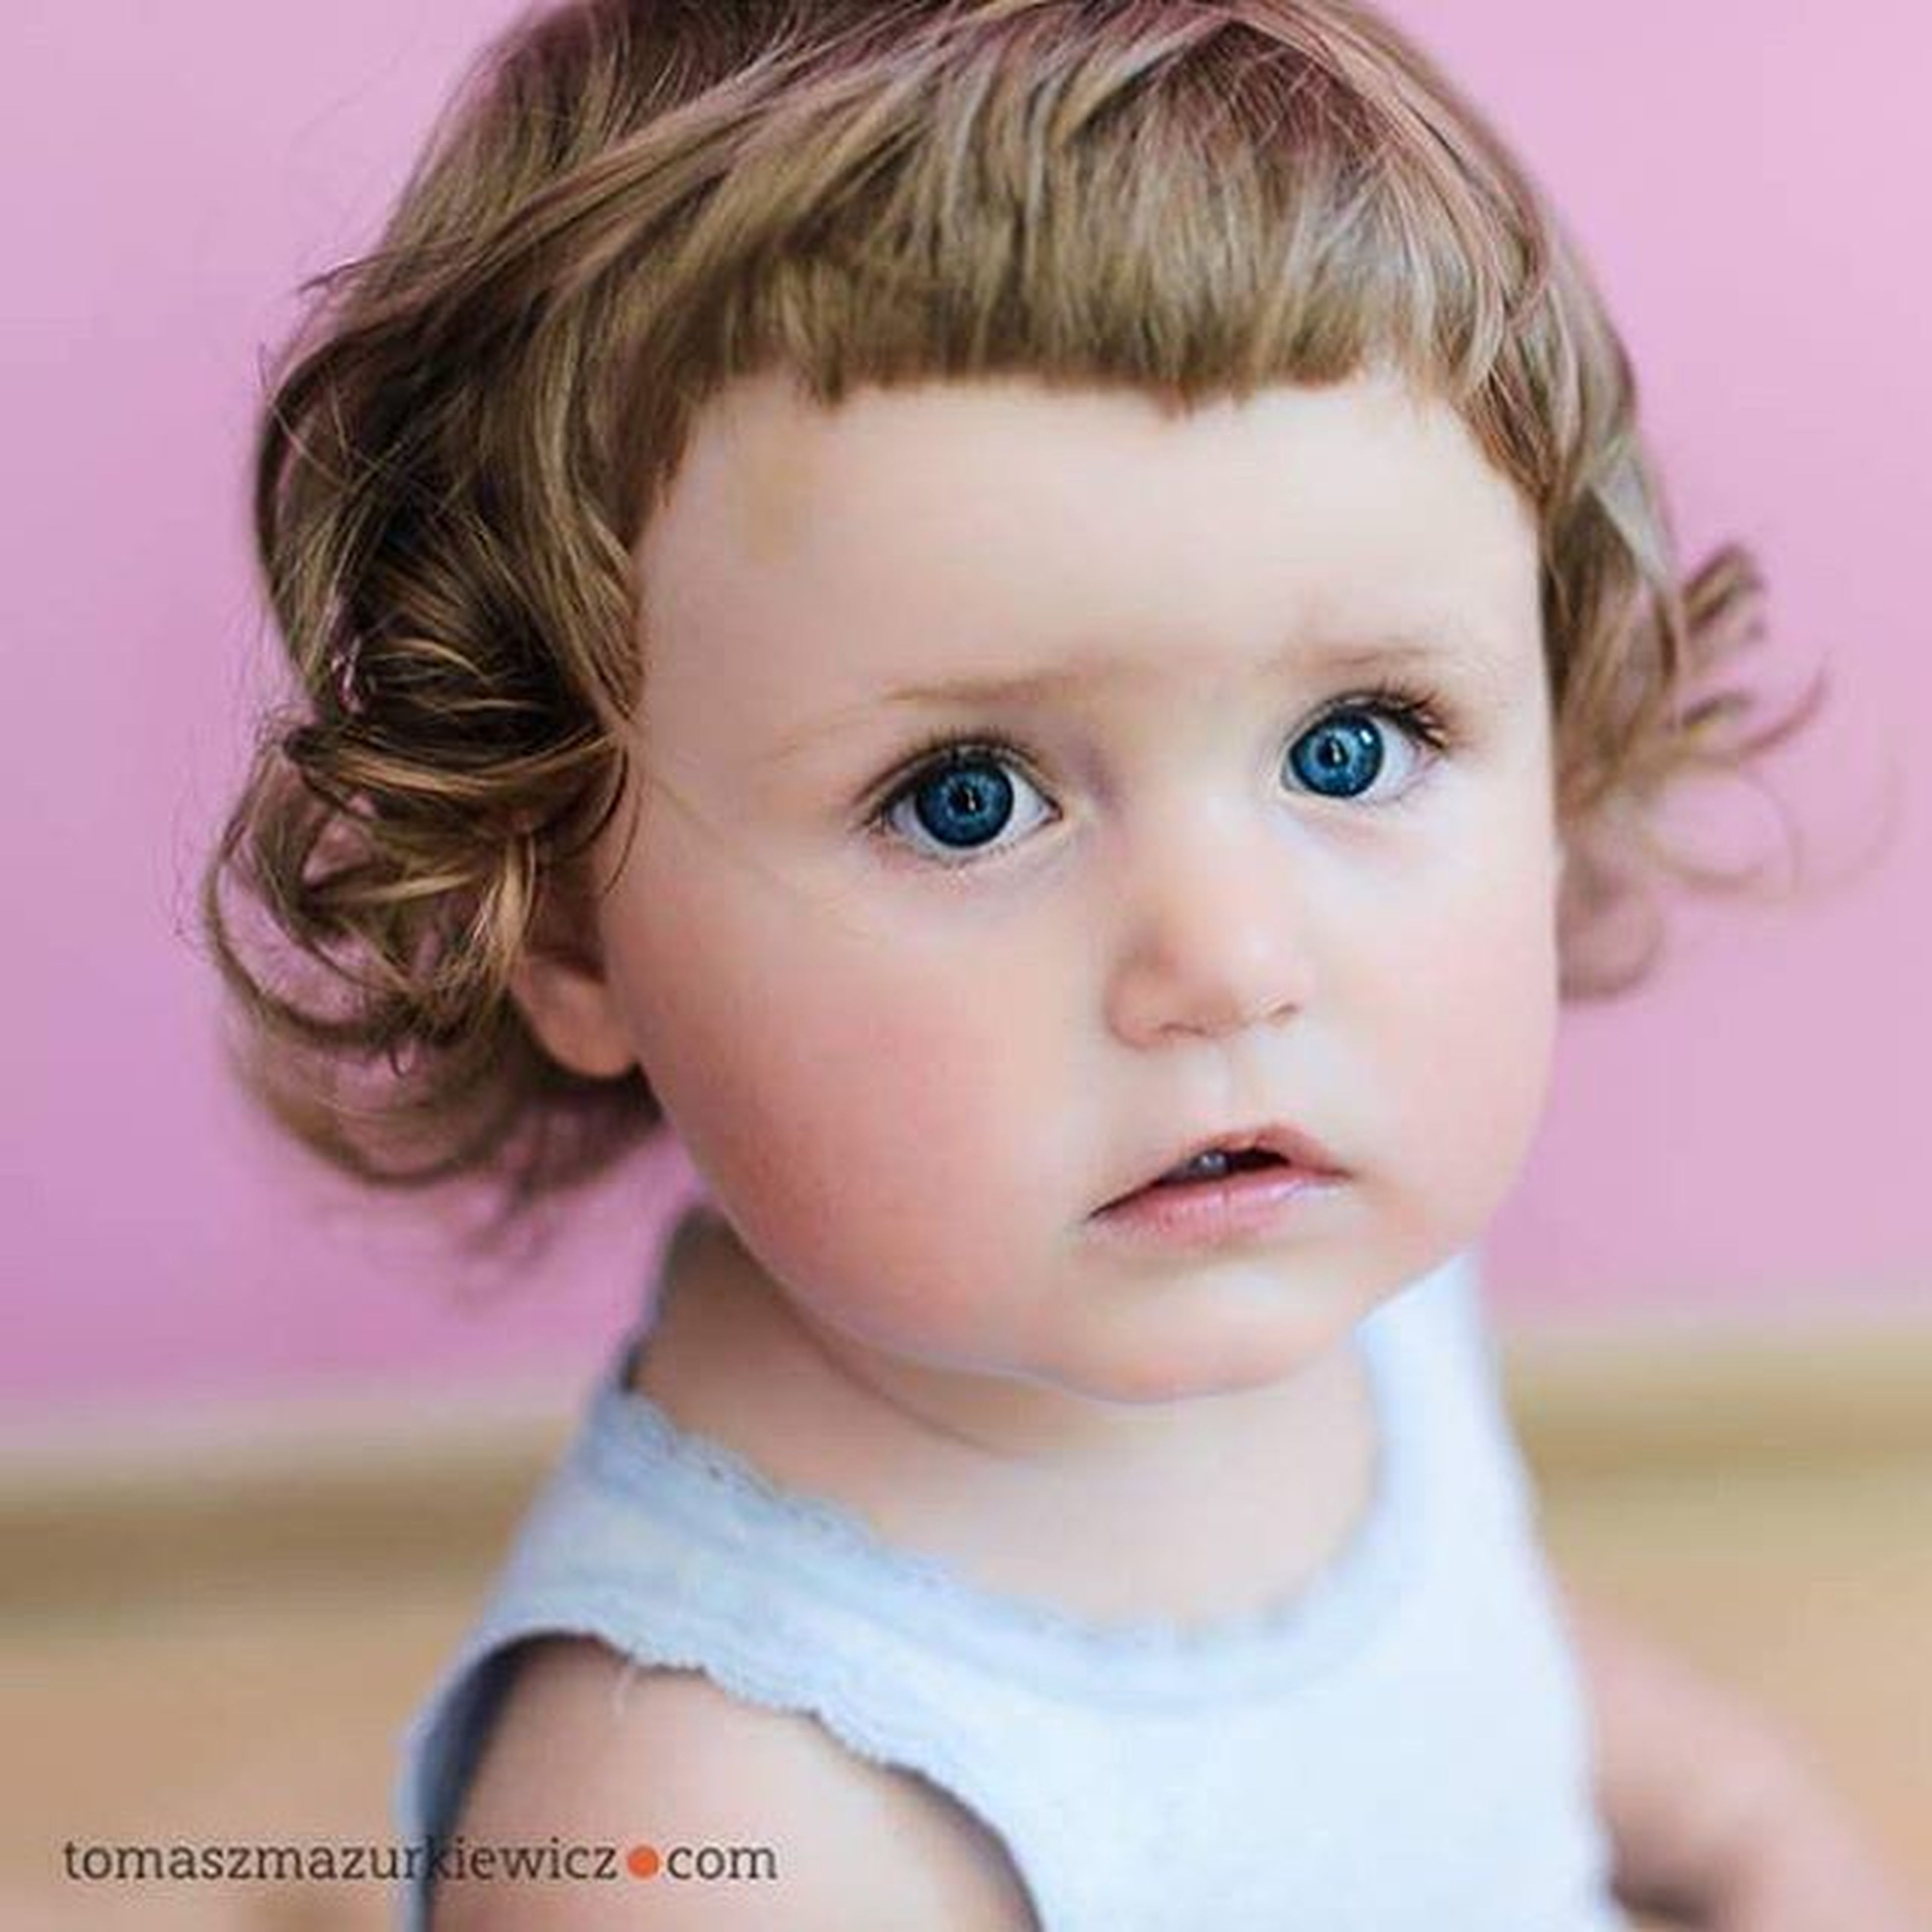 childhood, innocence, cute, elementary age, person, looking at camera, portrait, headshot, girls, indoors, close-up, boys, lifestyles, front view, leisure activity, focus on foreground, babyhood